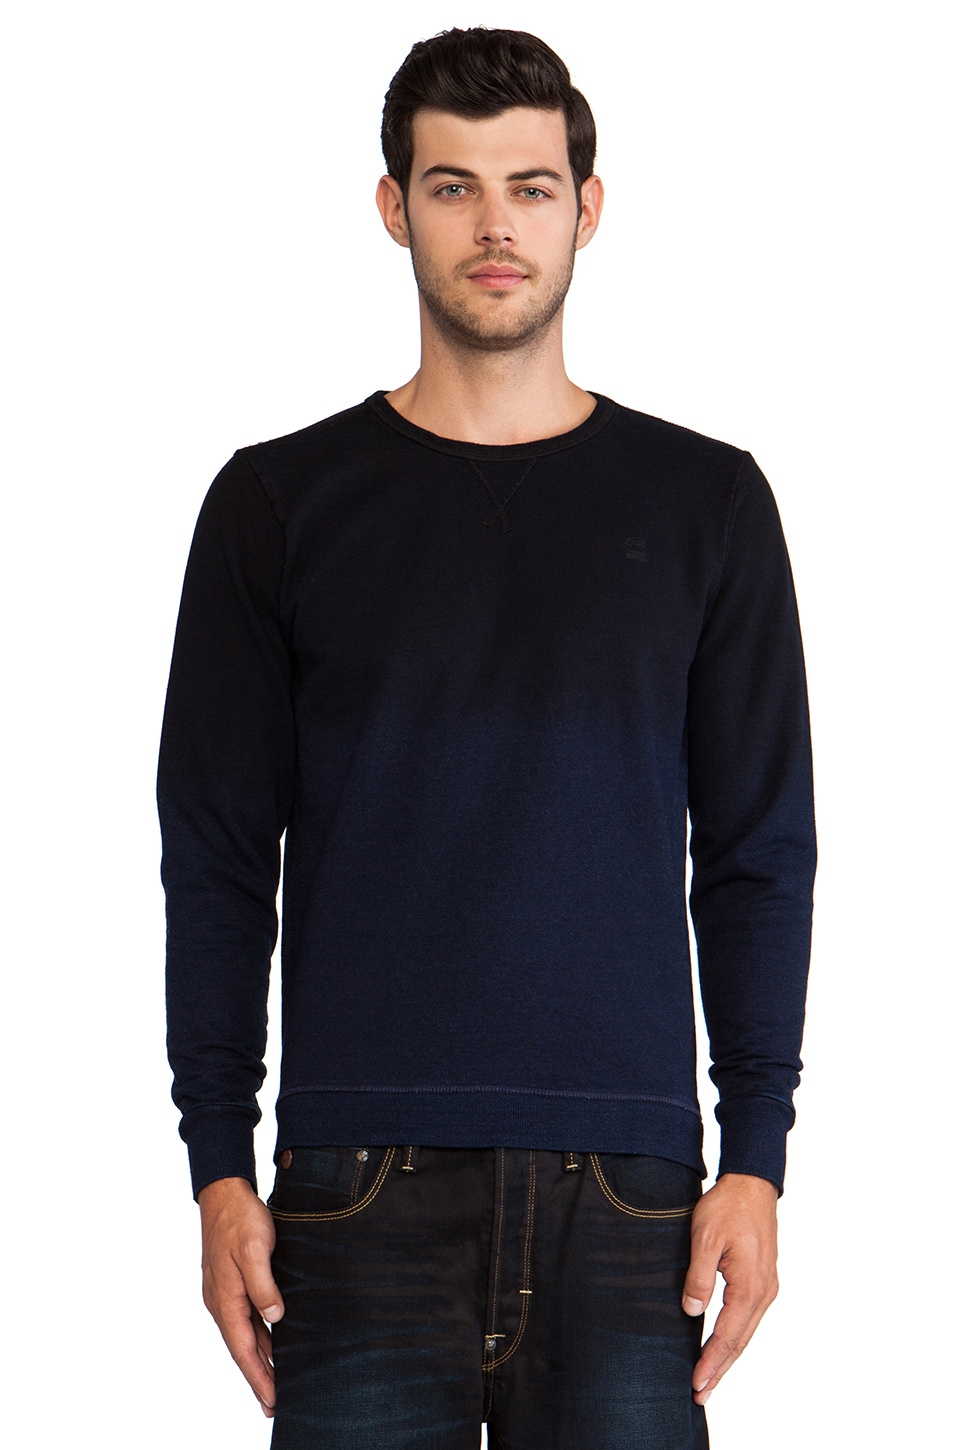 G-Star Dottlevel Sweatshirt in Indigo